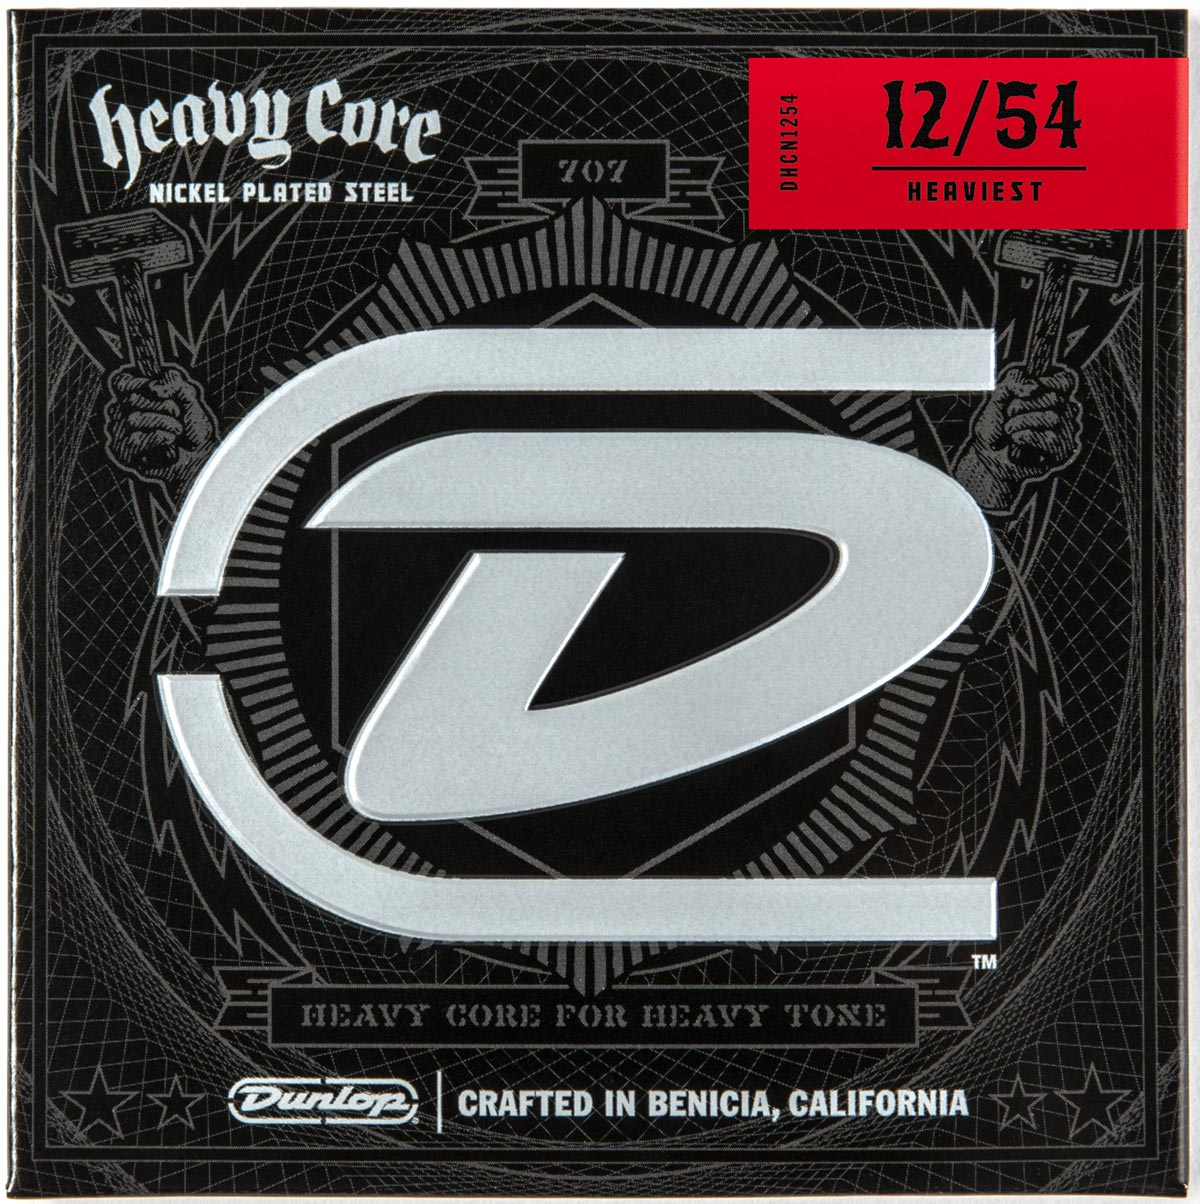 DUNLOP HEAVY CORE ELECTRIC STRINGS - 12-54 HEAVIEST